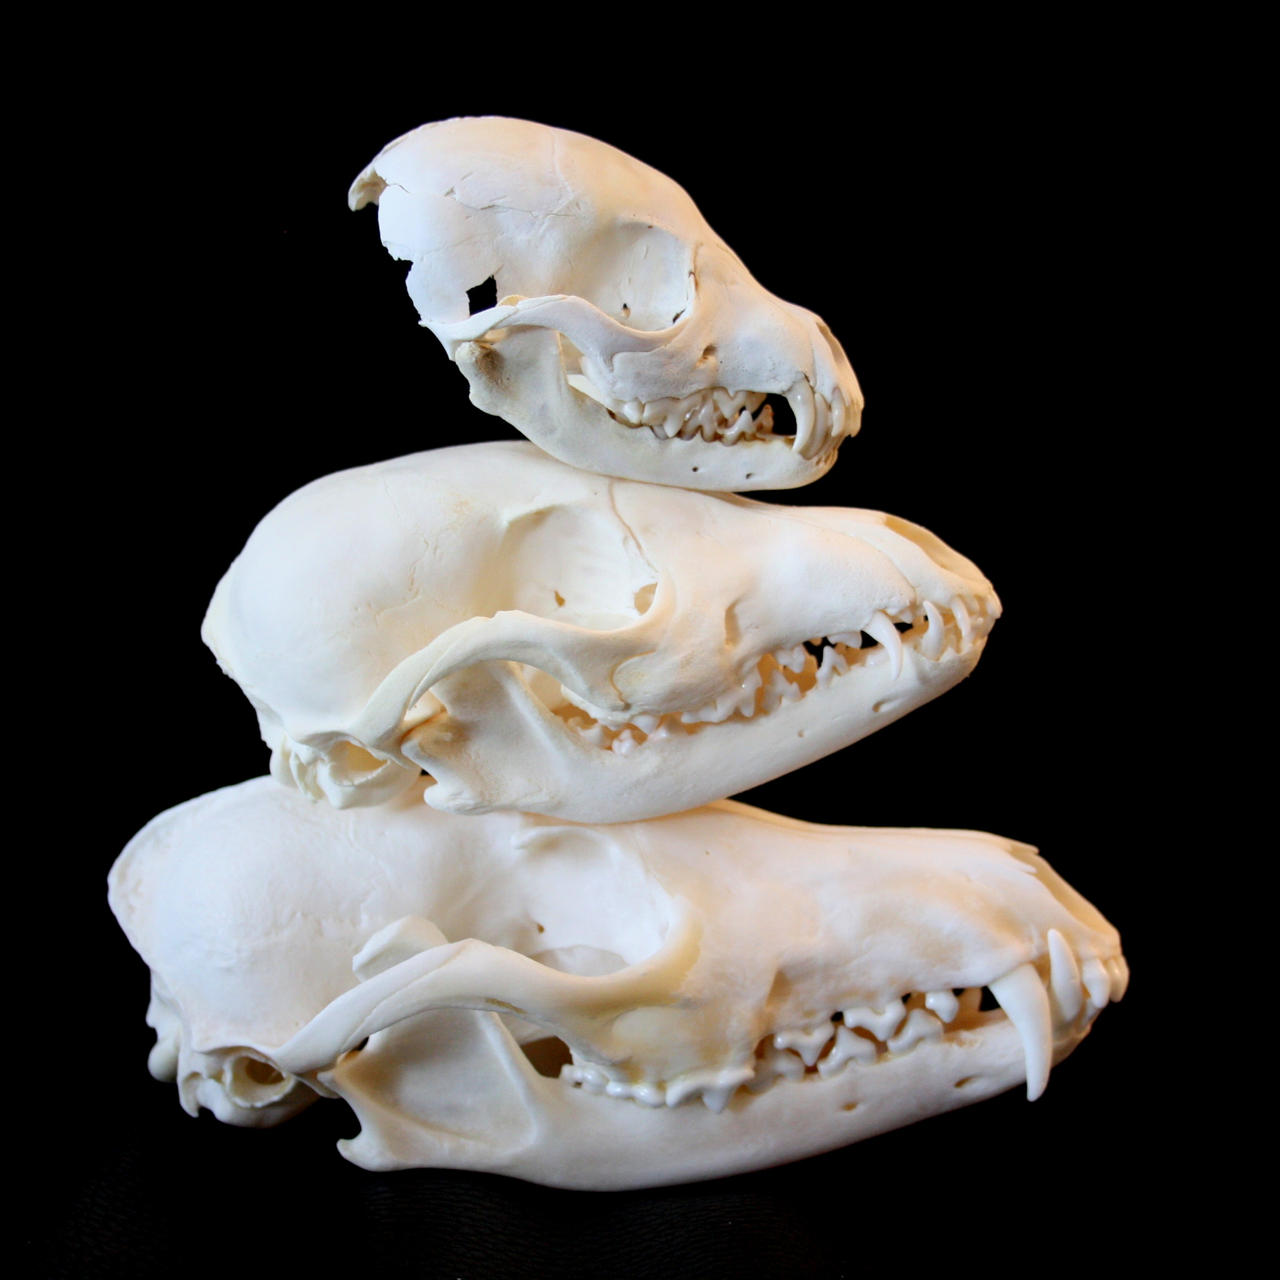 Skulls Comparison 1 By Nimgaraf On DeviantArt